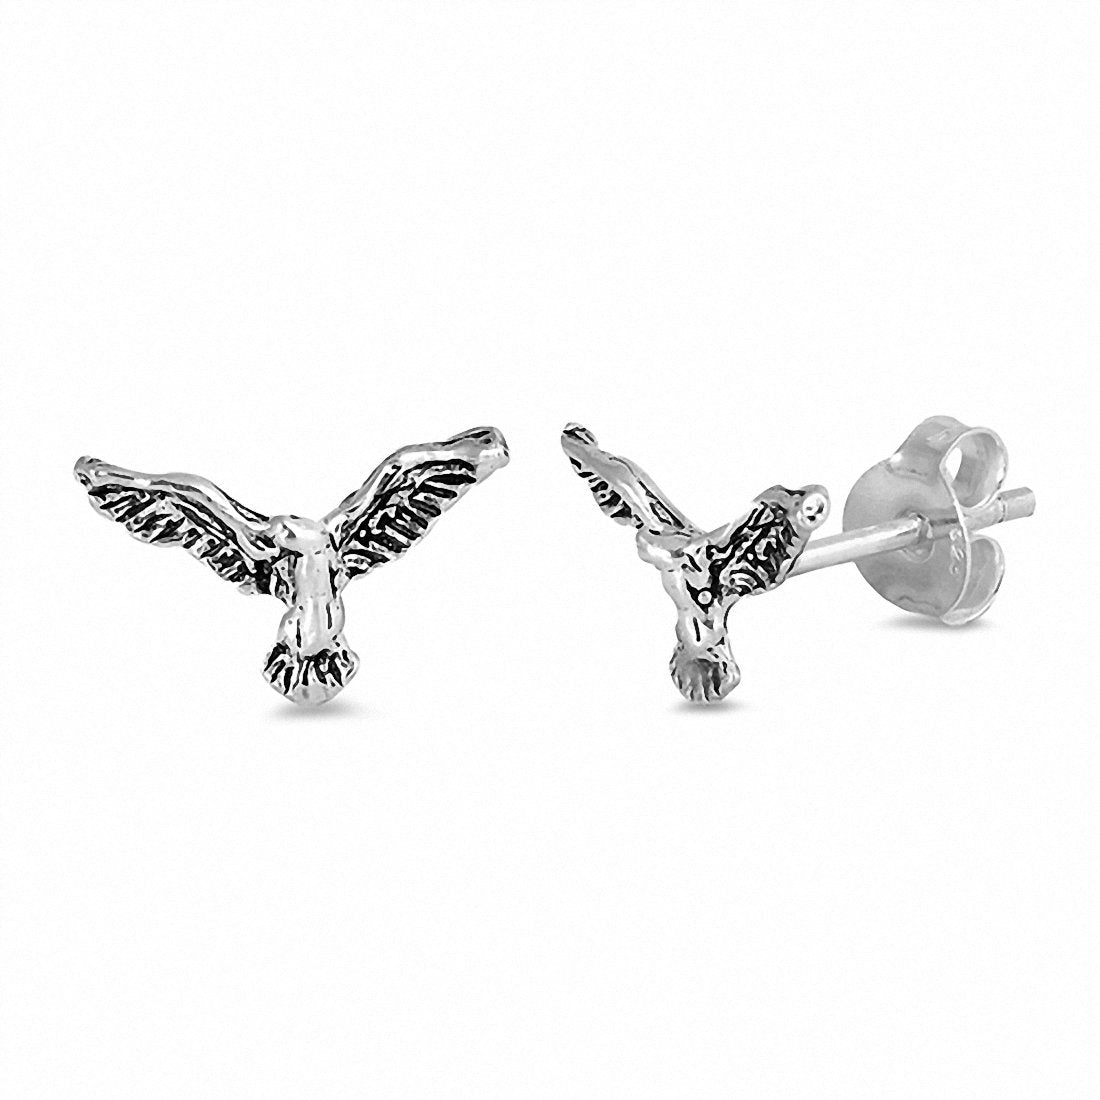 Tiny Eagle Stud Earrings 925 Sterling Silver Choose Color